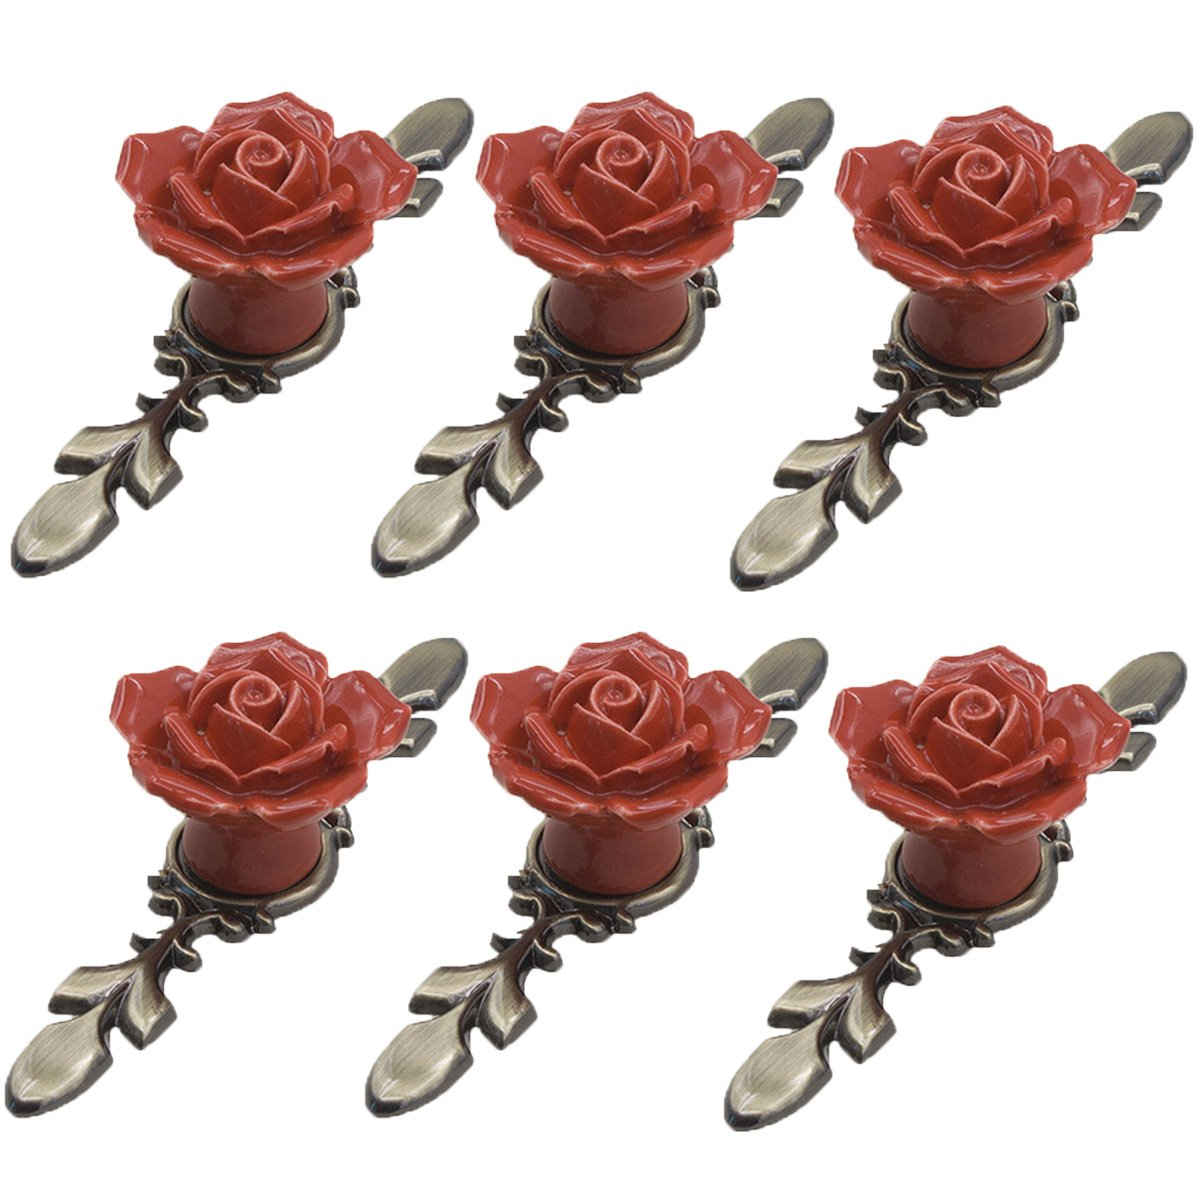 FirstDecor 6PCS Handmade Vintage Floral Rose Ceramic Door Knobs/Drawer Pulls/Cabinet Handles with Antique Brass Base - Home Decor Accessories